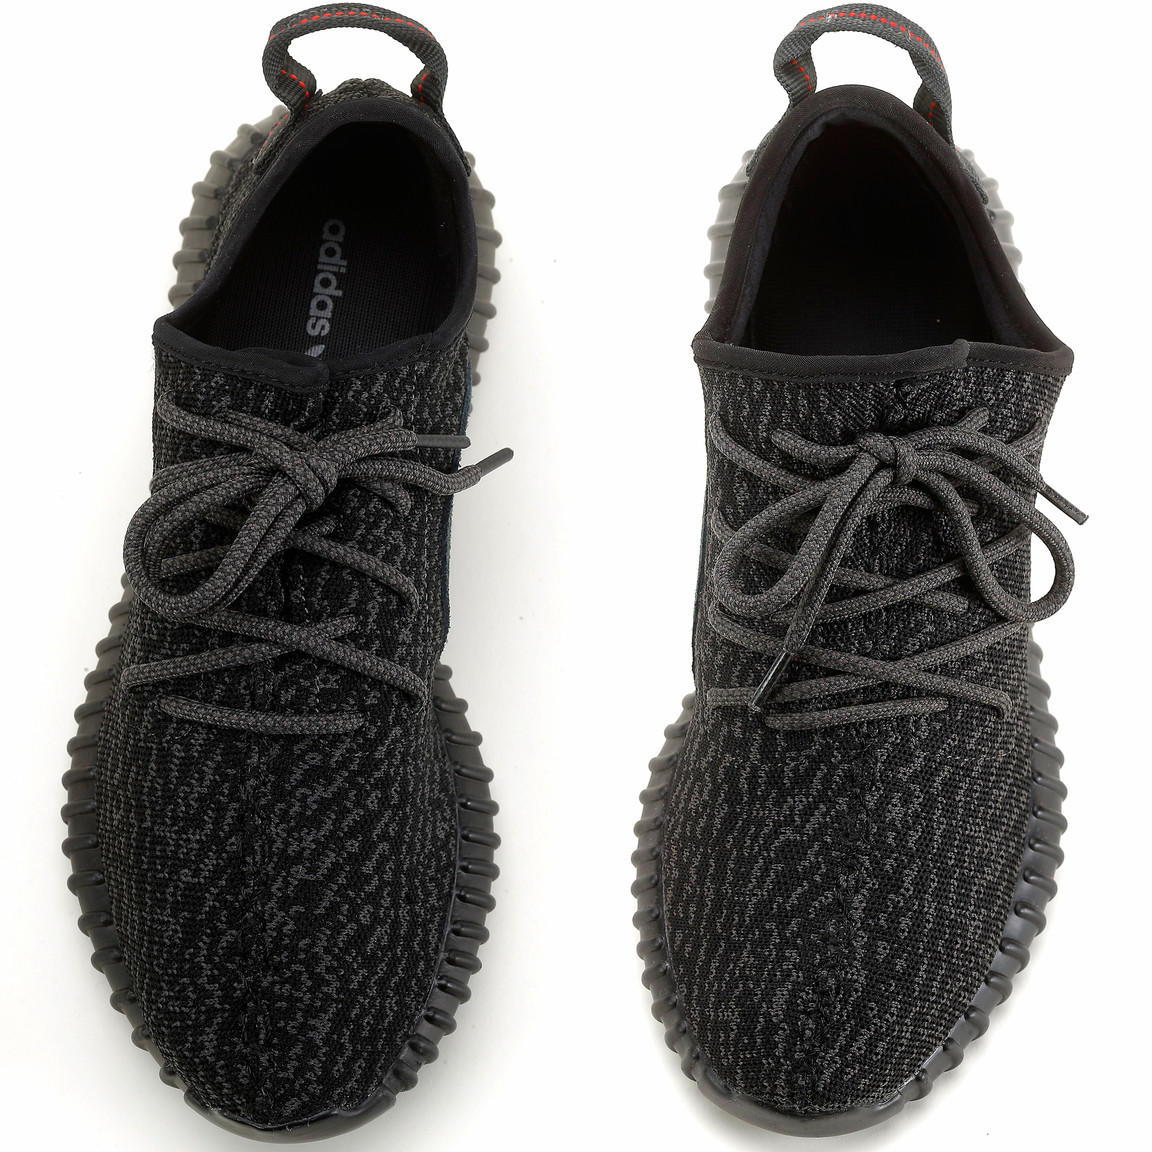 97a743237 Counterfeit Yeezys and the booming sneaker black market - Los ...